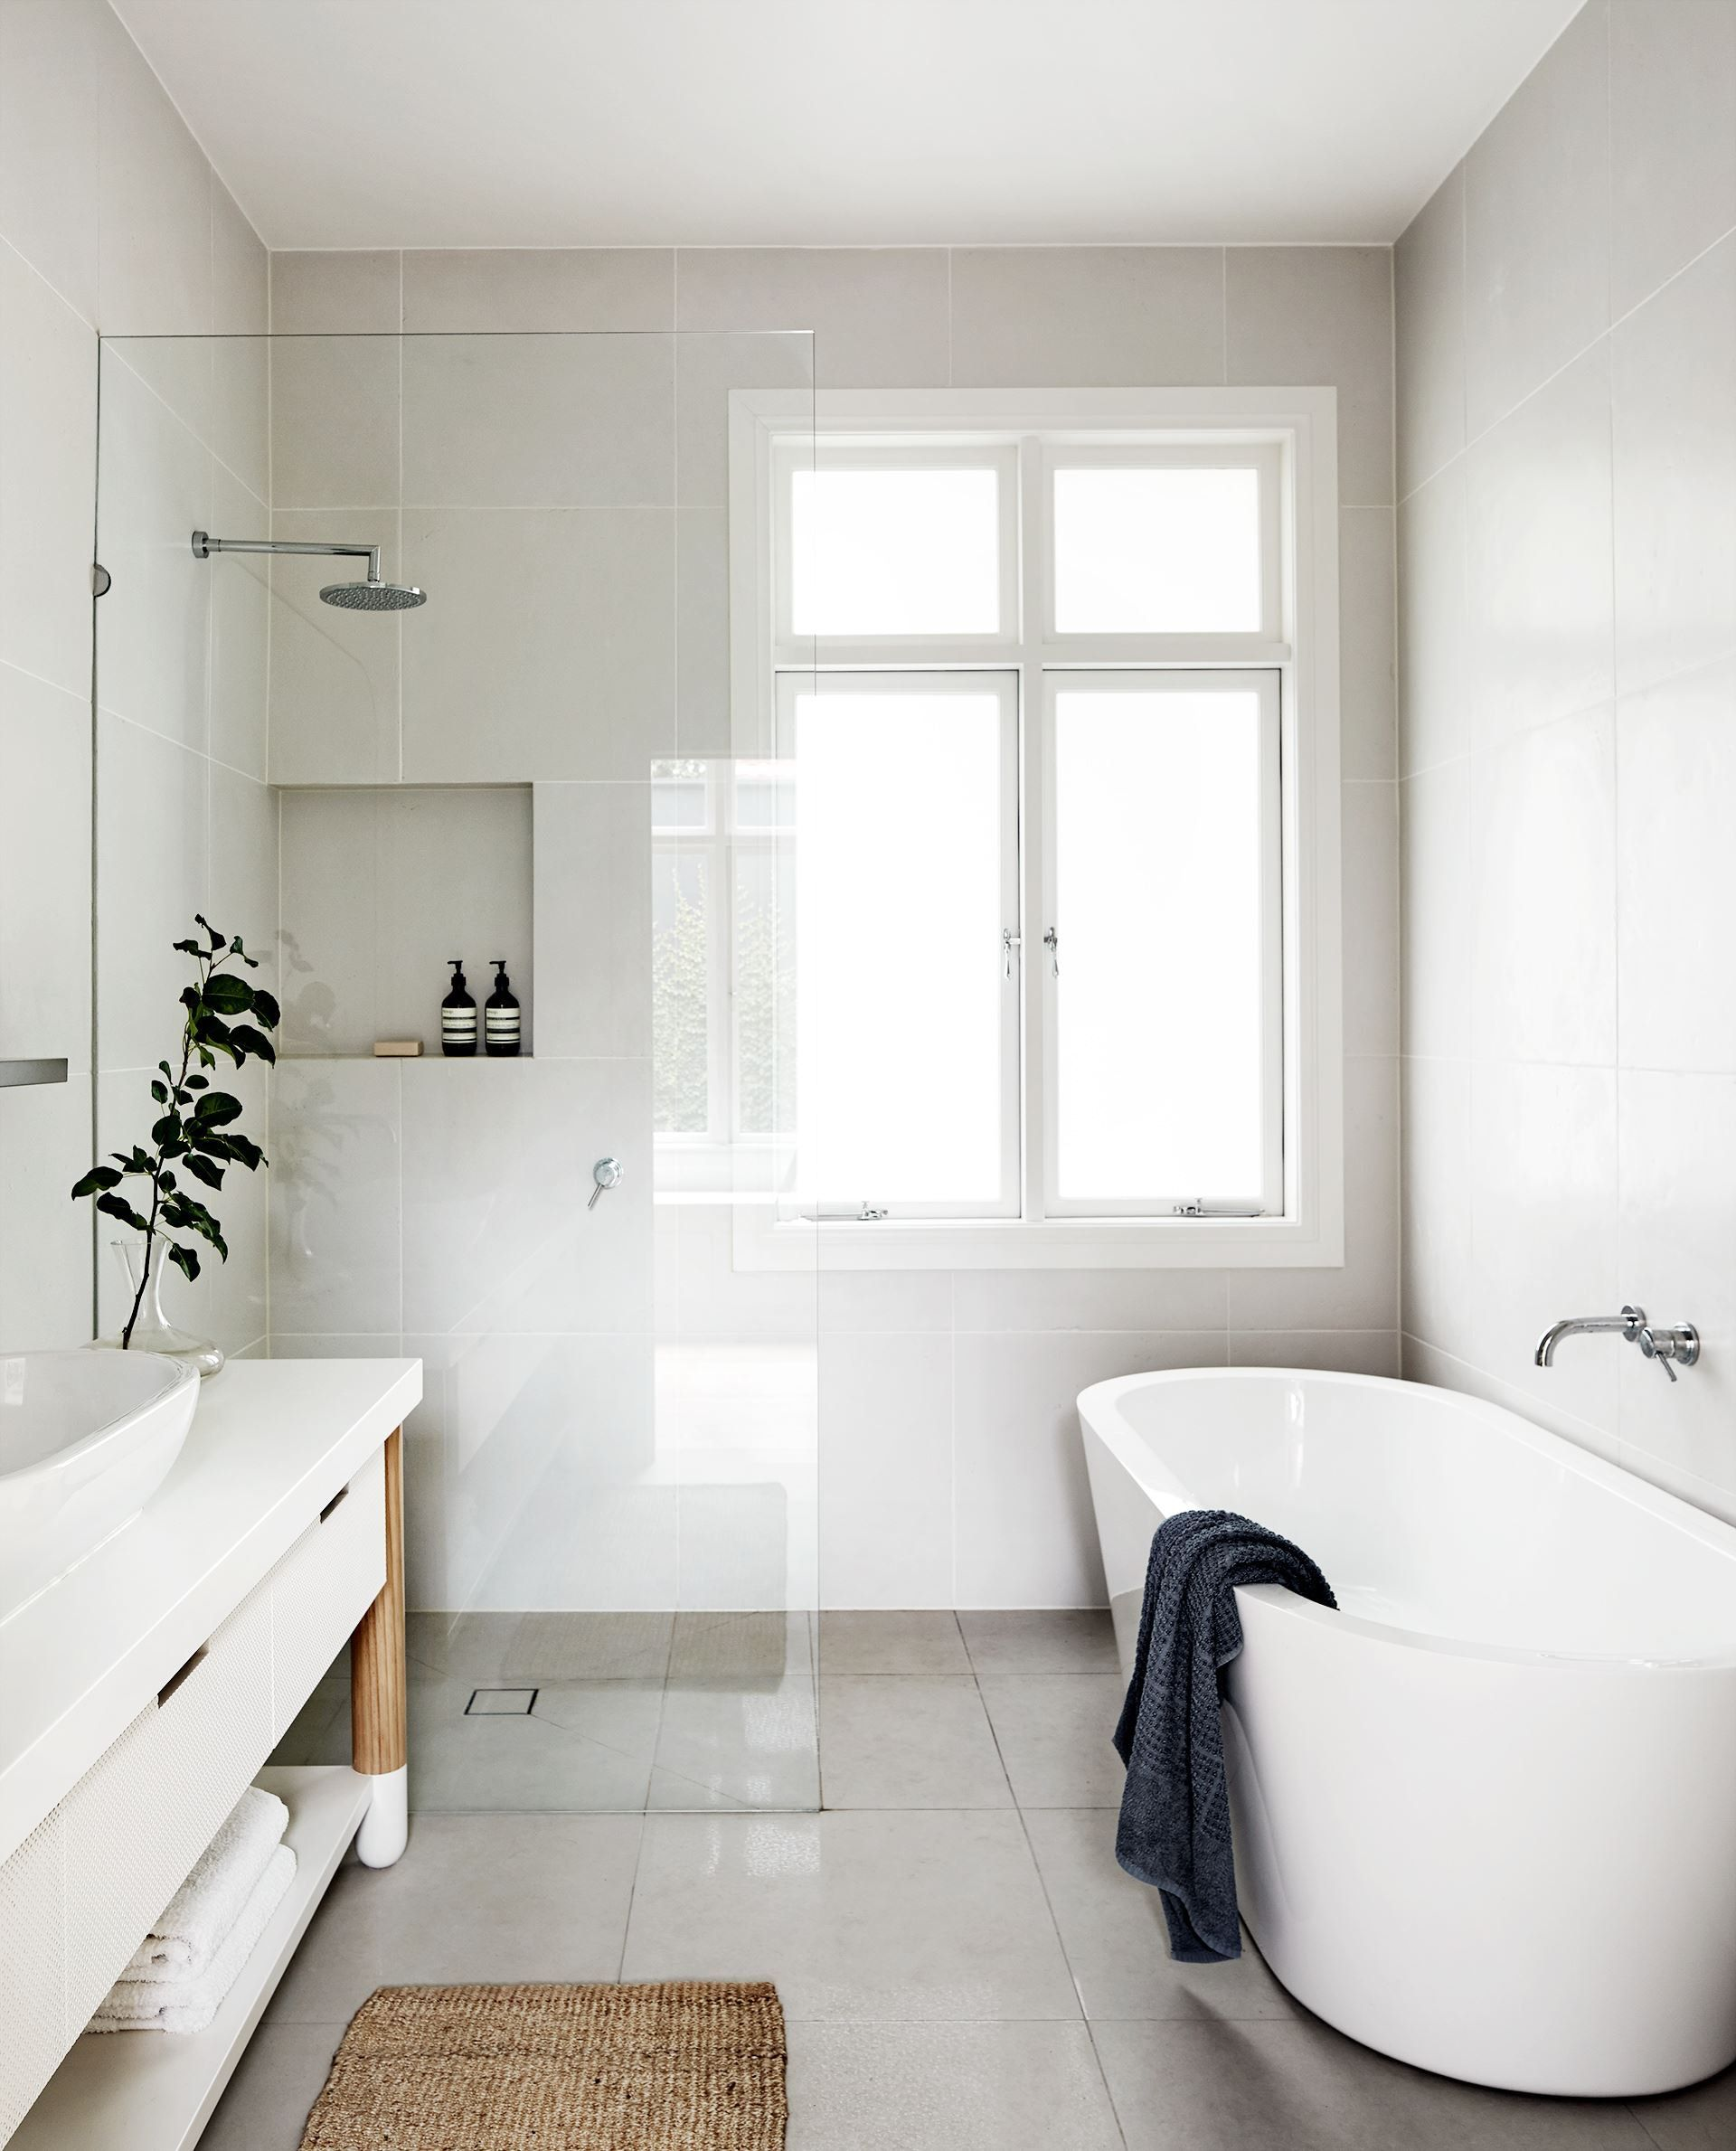 Stylish Remodeling Ideas for Small Bathrooms | Pinterest | Bathroom ...